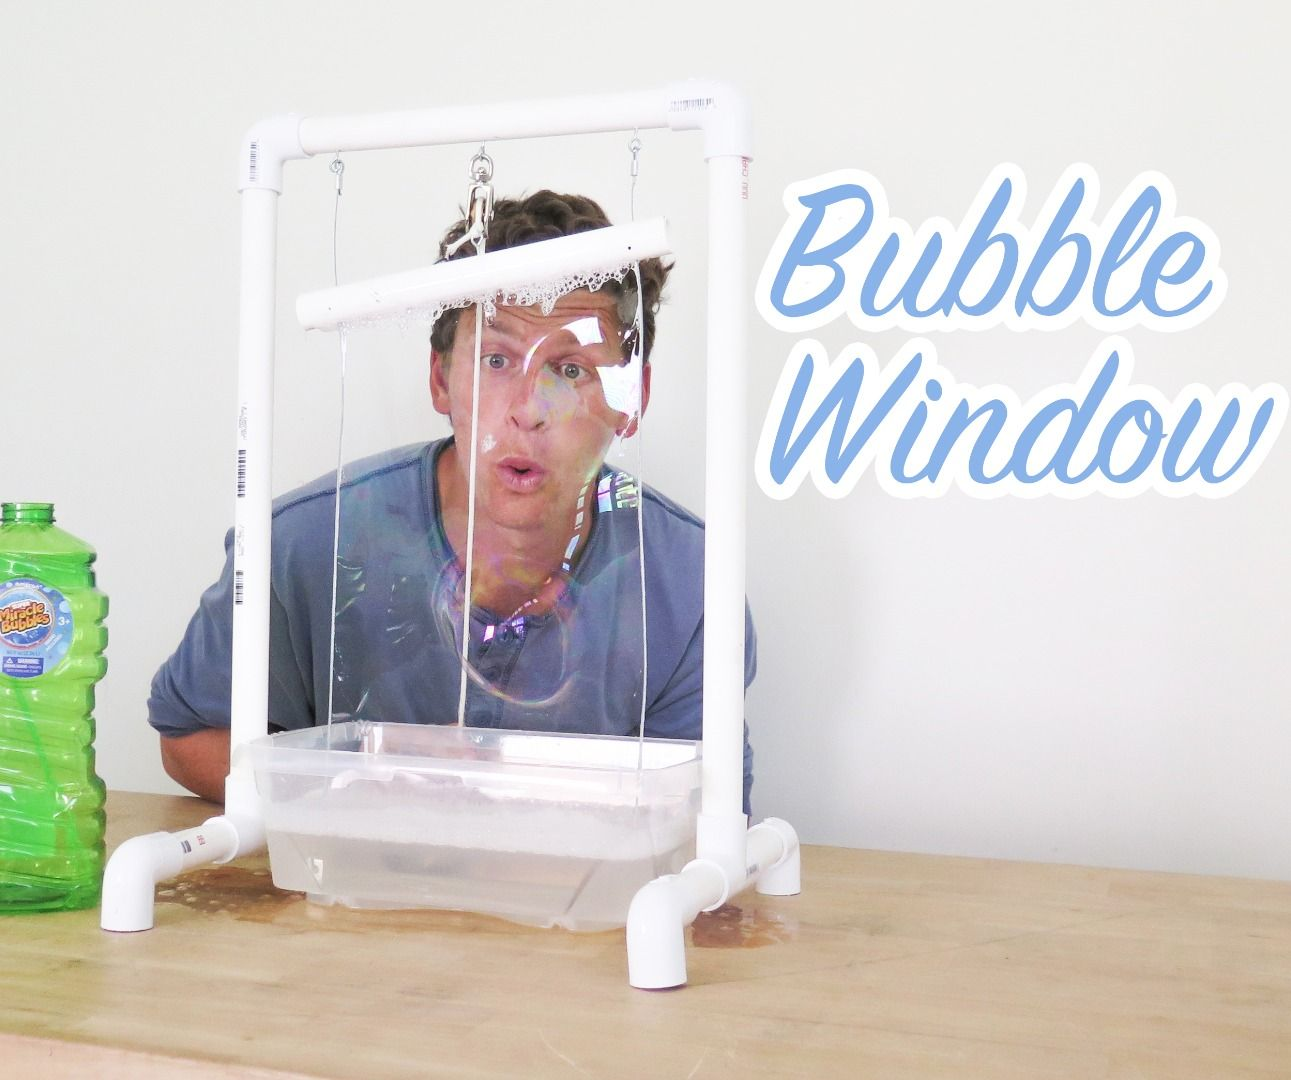 Bubble Window!